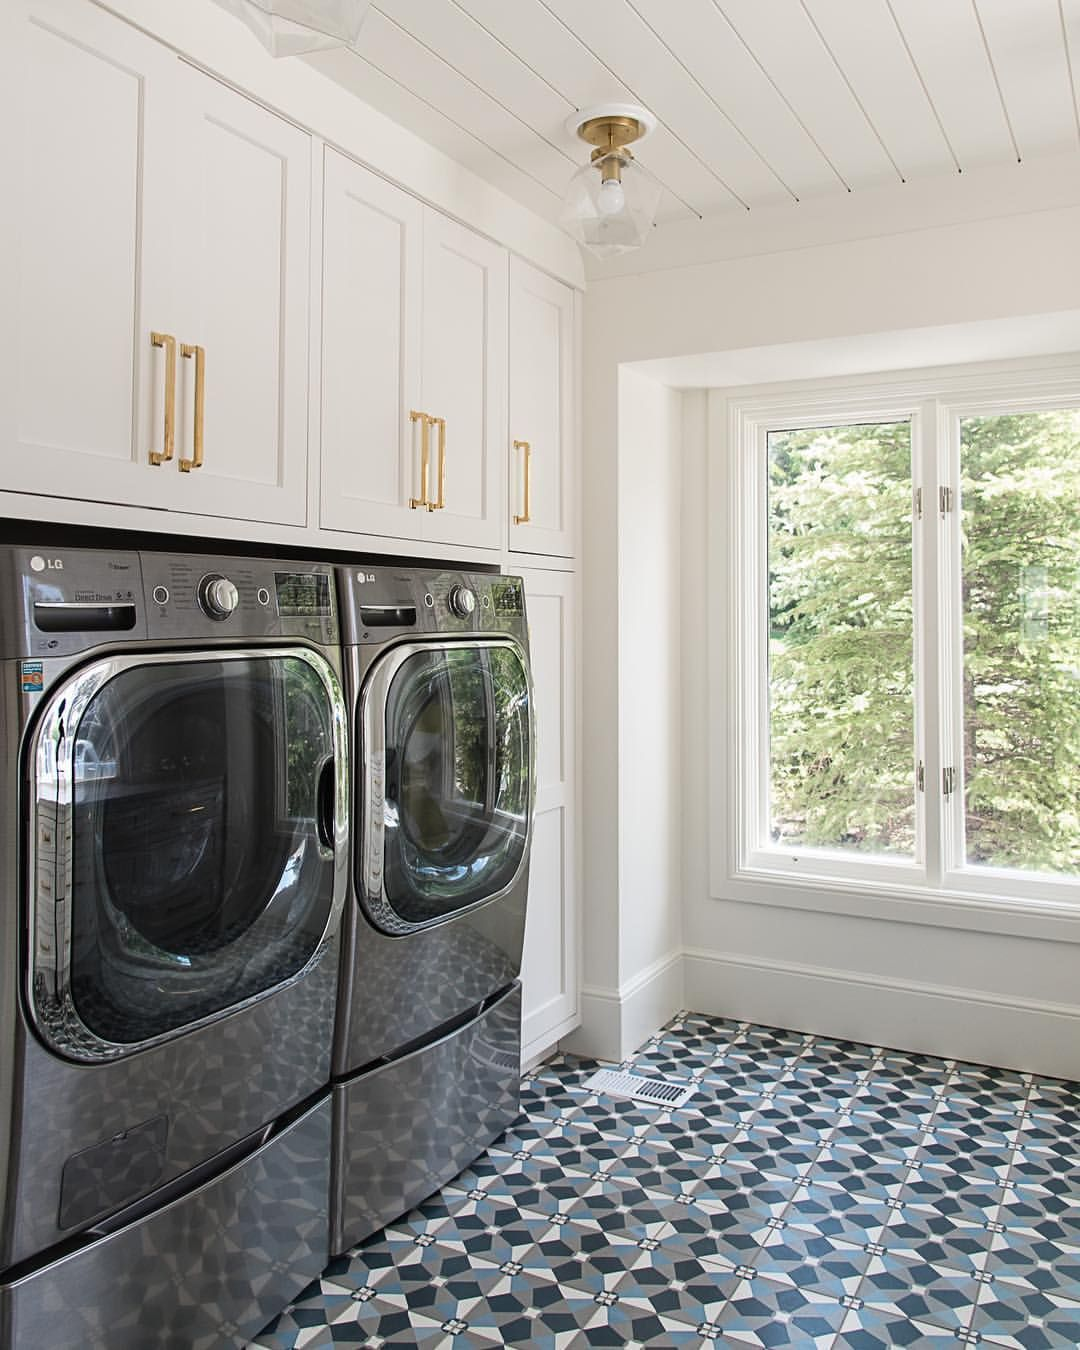 We Borrowed From The Laundry Room To Gain A Butlers Pantry But With Space Planning Our Client Ended Up With More S Laundry Room Laundry Mud Room Space Planning